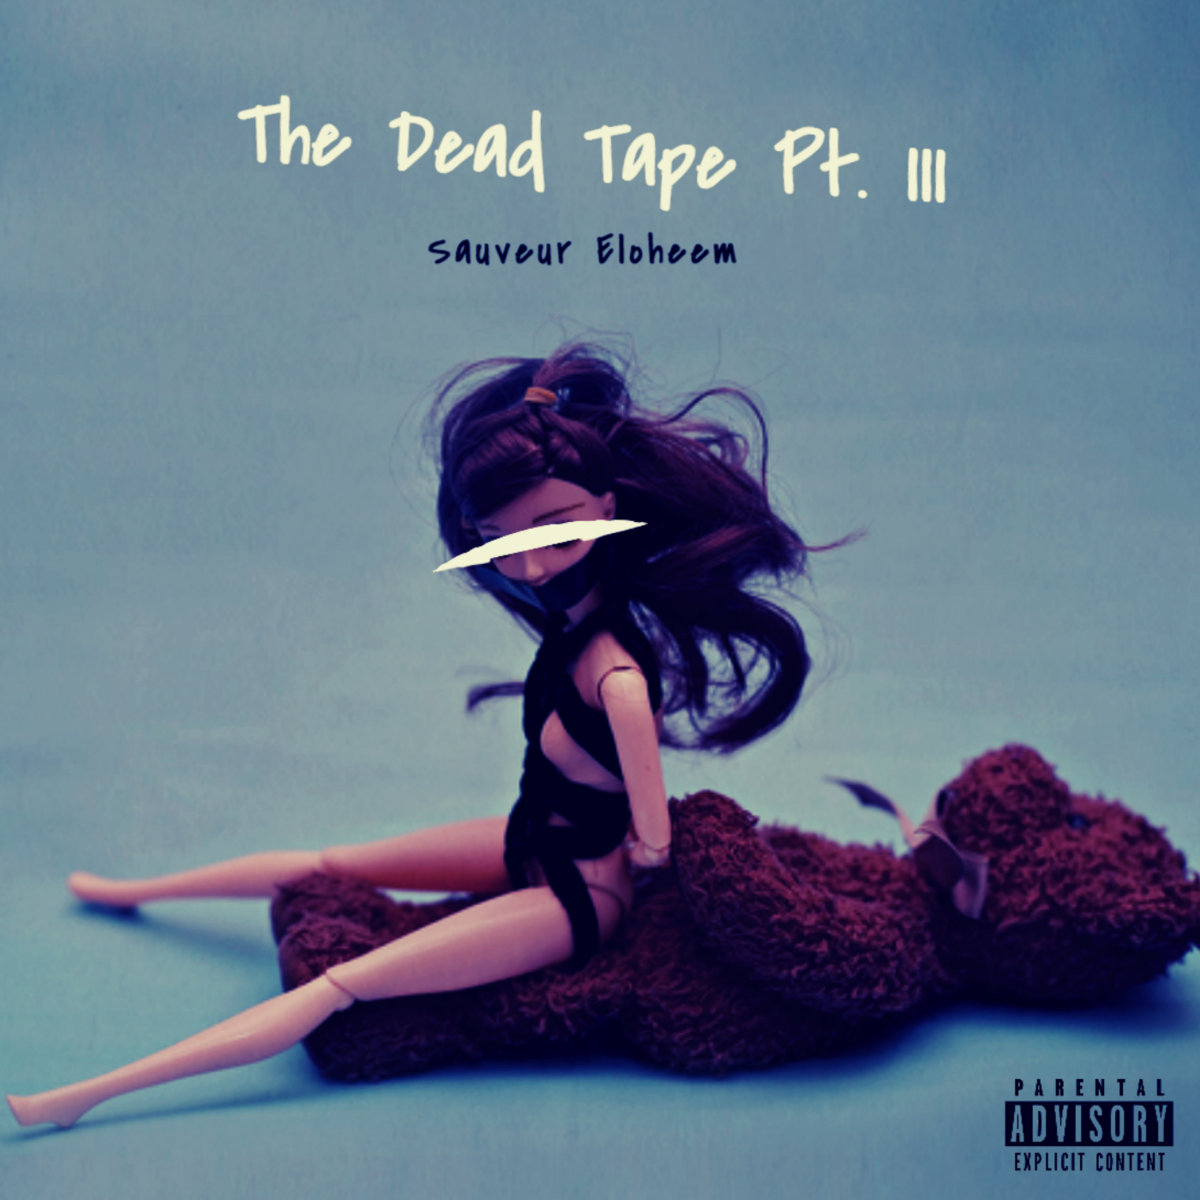 Sauveur Eloheem – The Dead Tape, Pt. III